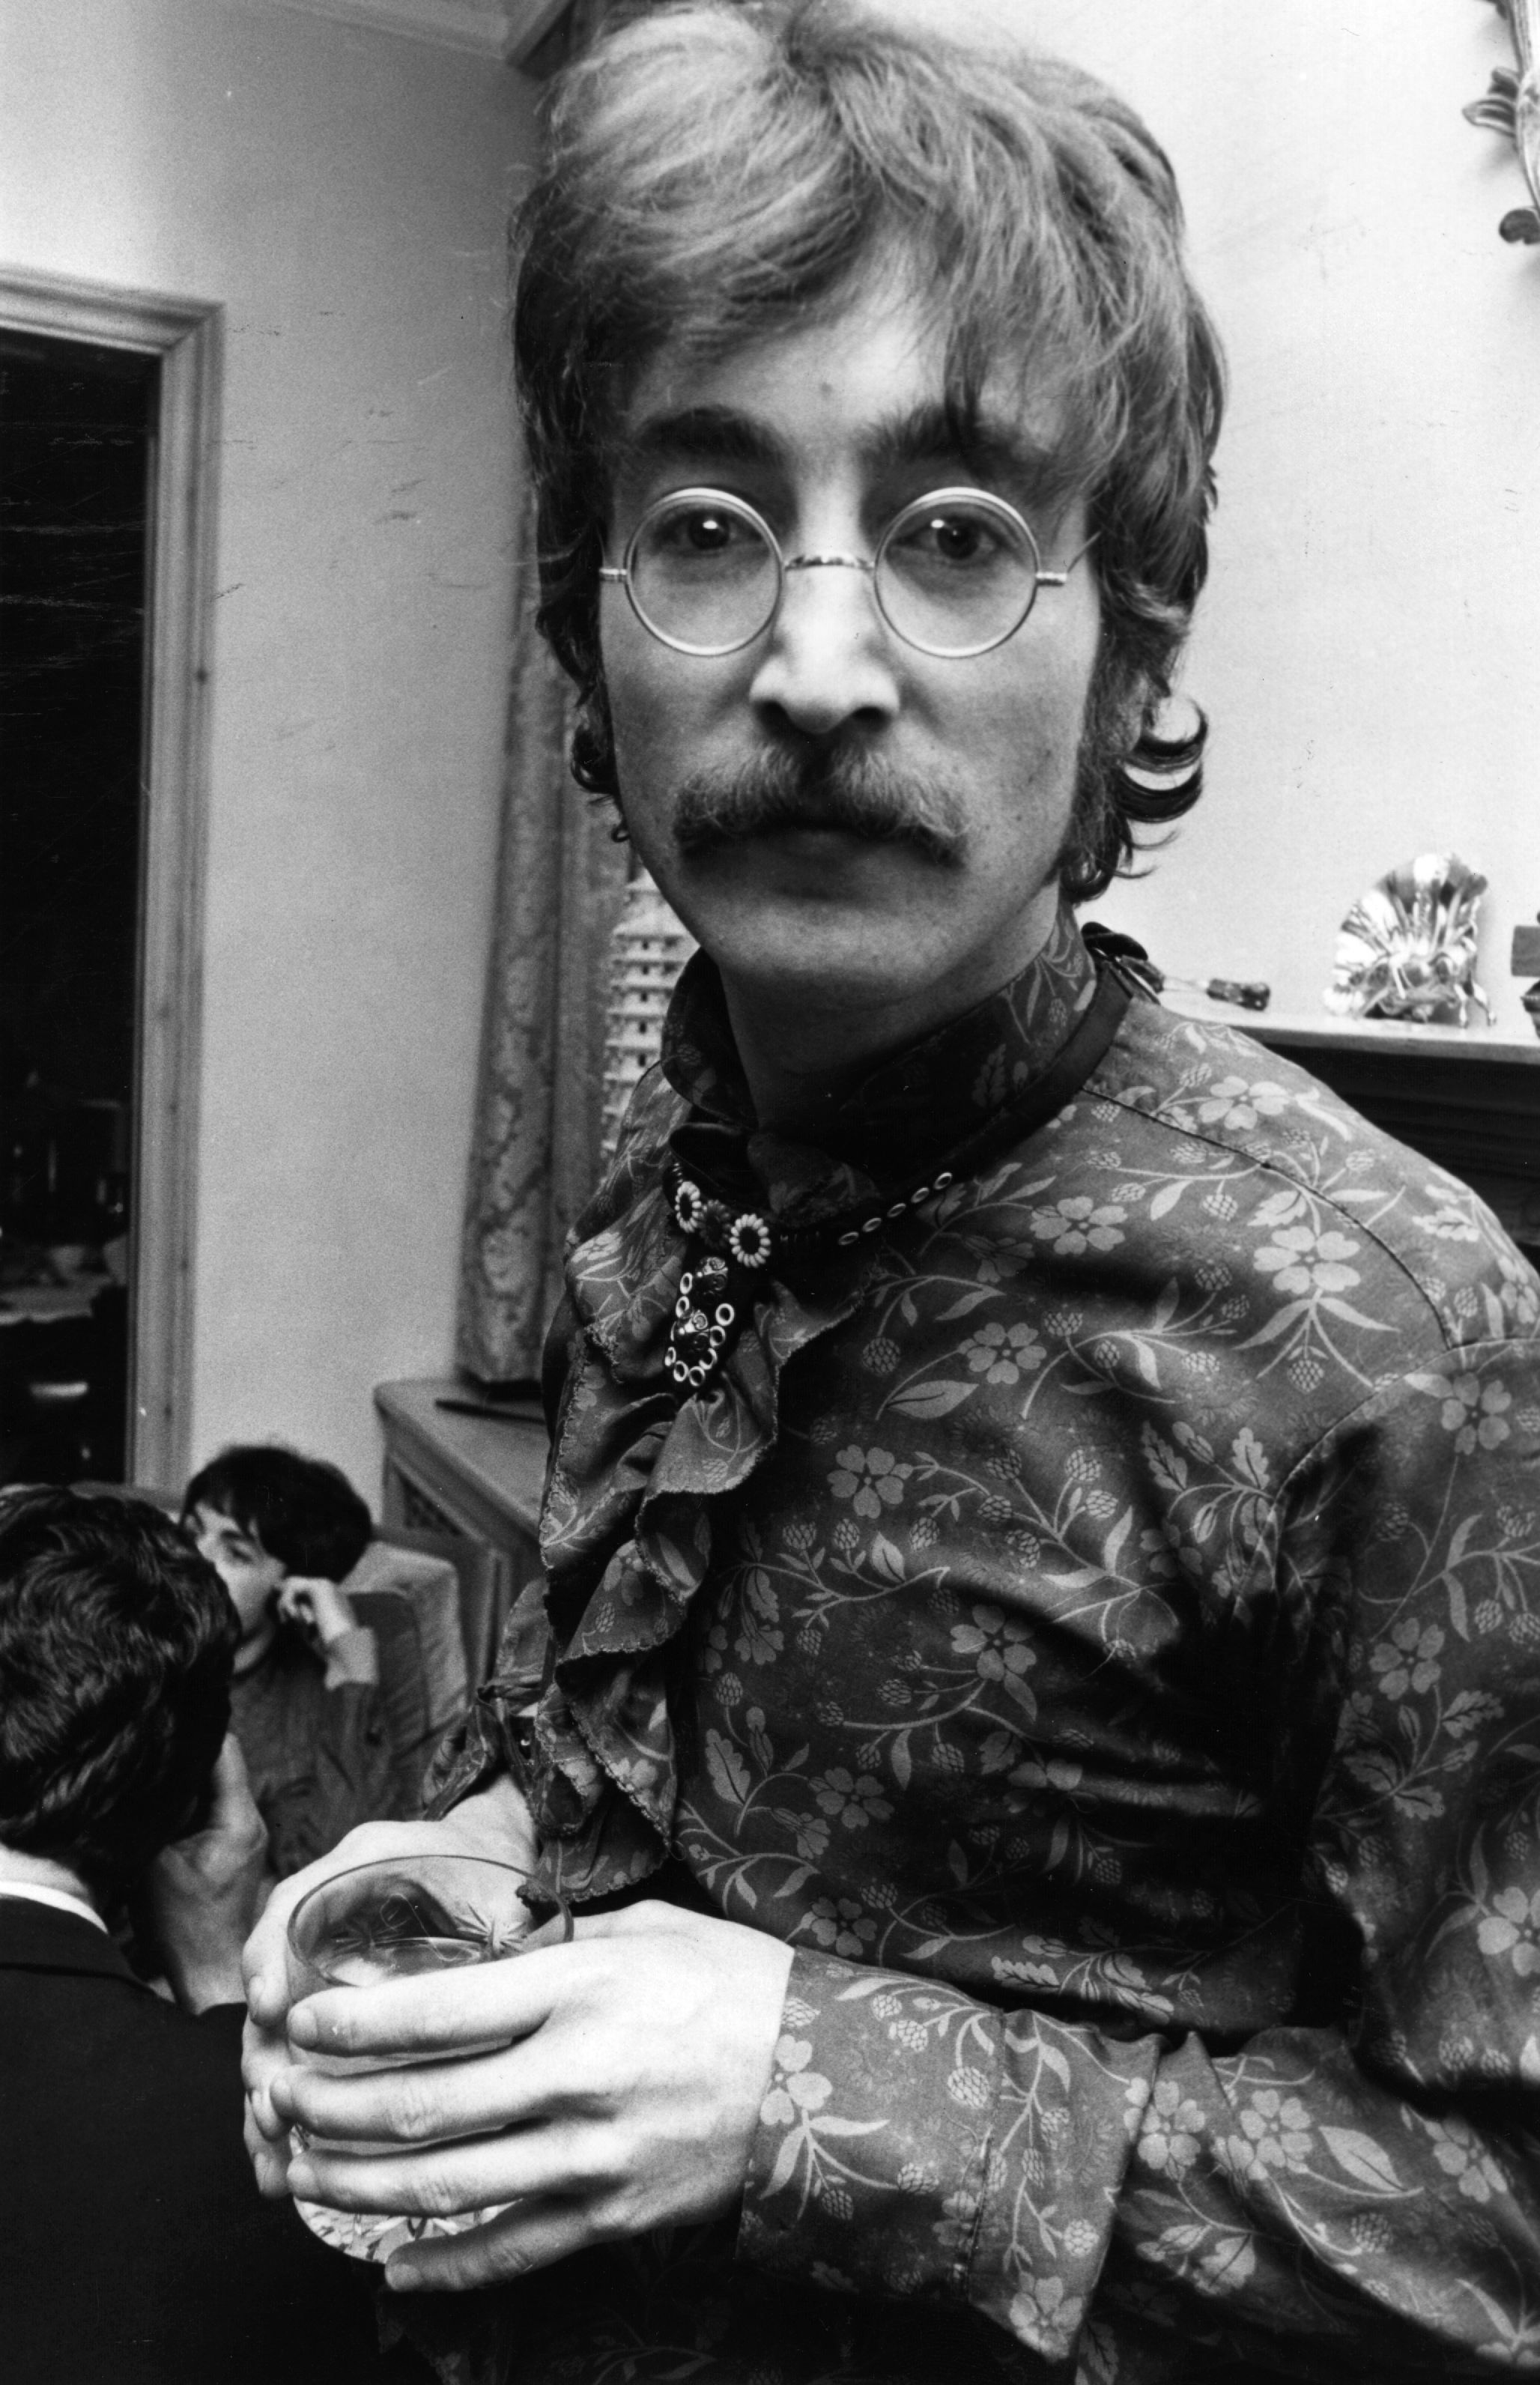 Image Credits: Getty Images / John Downing | Singer, guitarist and songwriter John Lennon (1940 - 1980) at manager Brian Epstein's west London home for a photocall for the launch of the Beatles' new album 'Sergeant Pepper's Lonely Hearts Club Band', 19th May 1967.